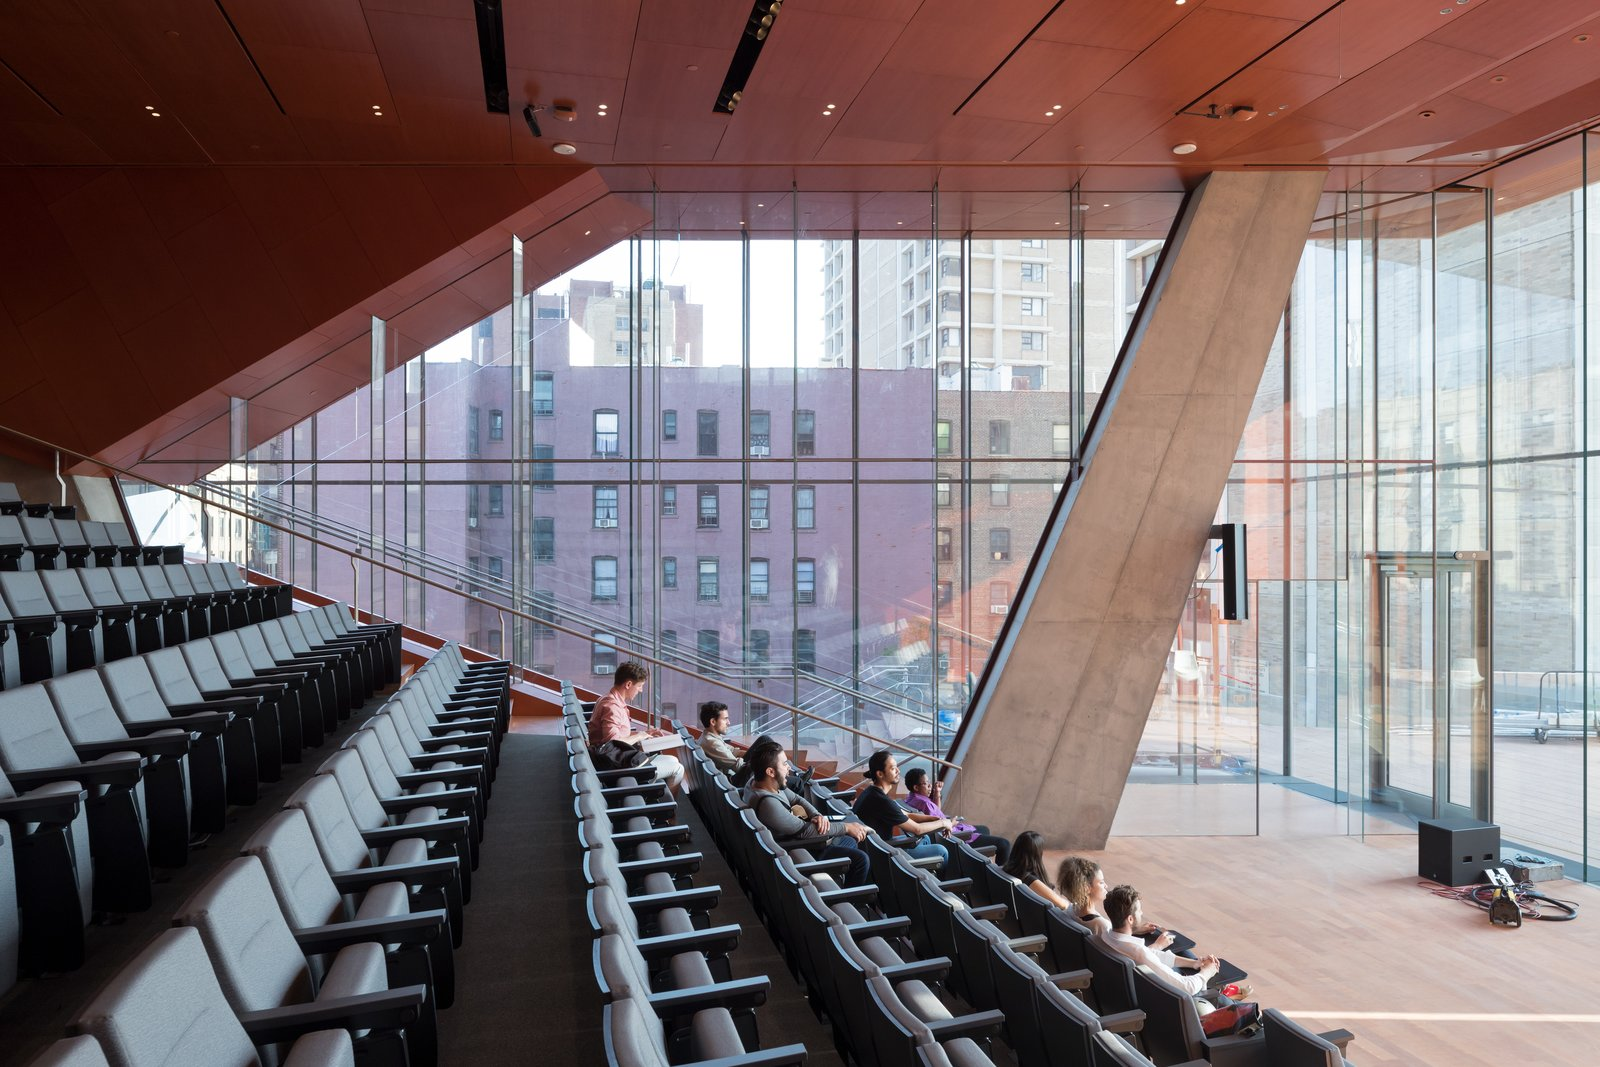 The auditorium includes 275 seats for lectures and concerts.  Photo 4 of 4 in Design Diagnosis: Back to School